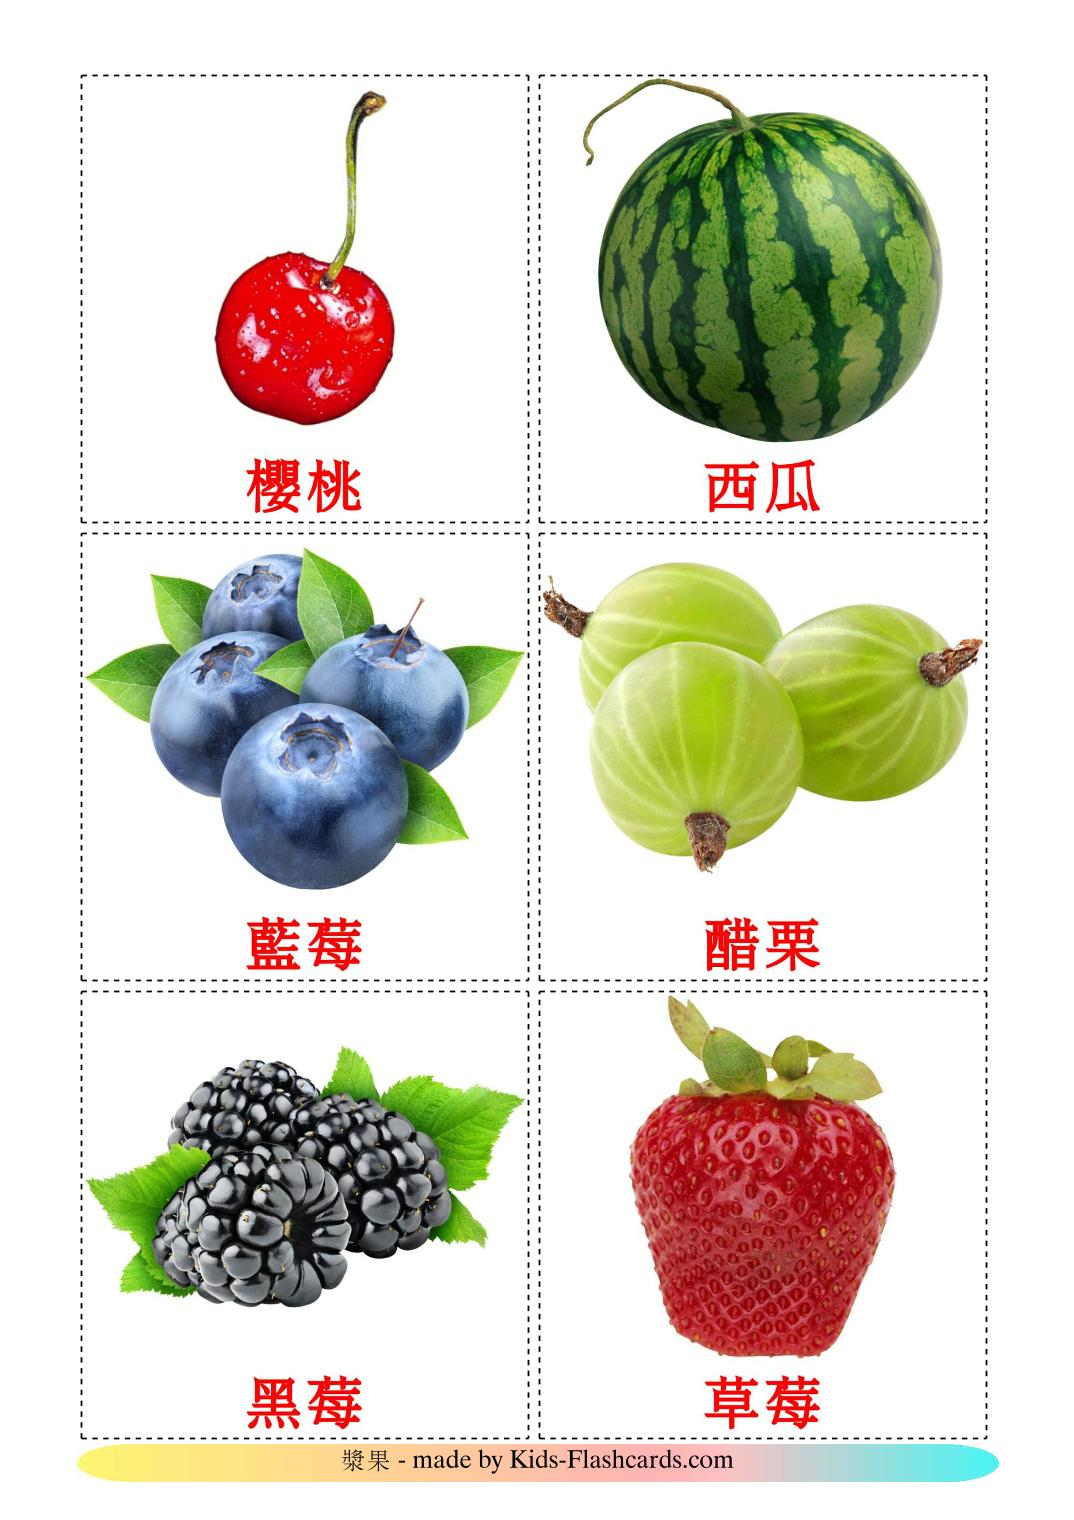 Berries - 11 Free Printable chinese(Traditional) Flashcards